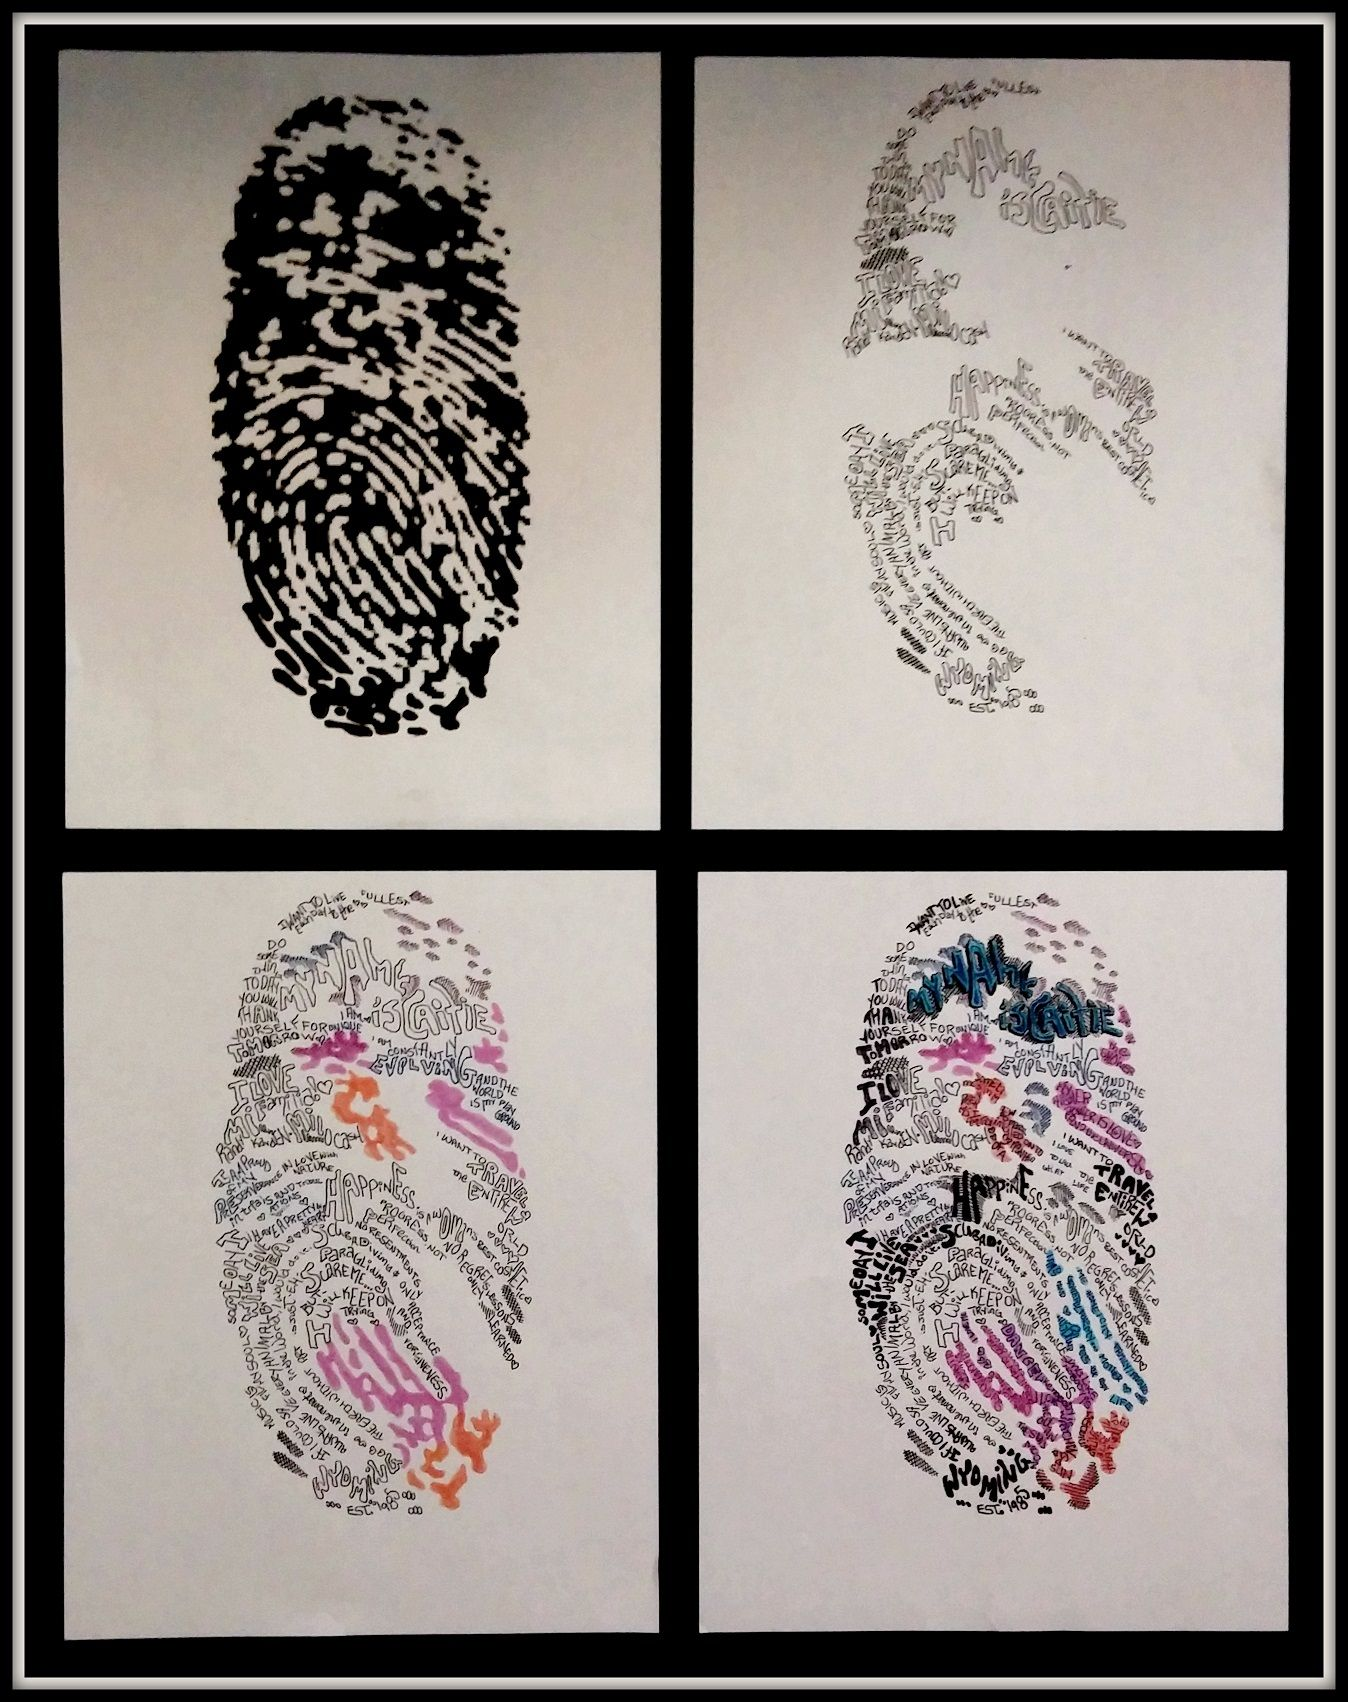 Fingerprint Art Project Use Black Stamp Pad To Collect Students Fingerprints Scan In